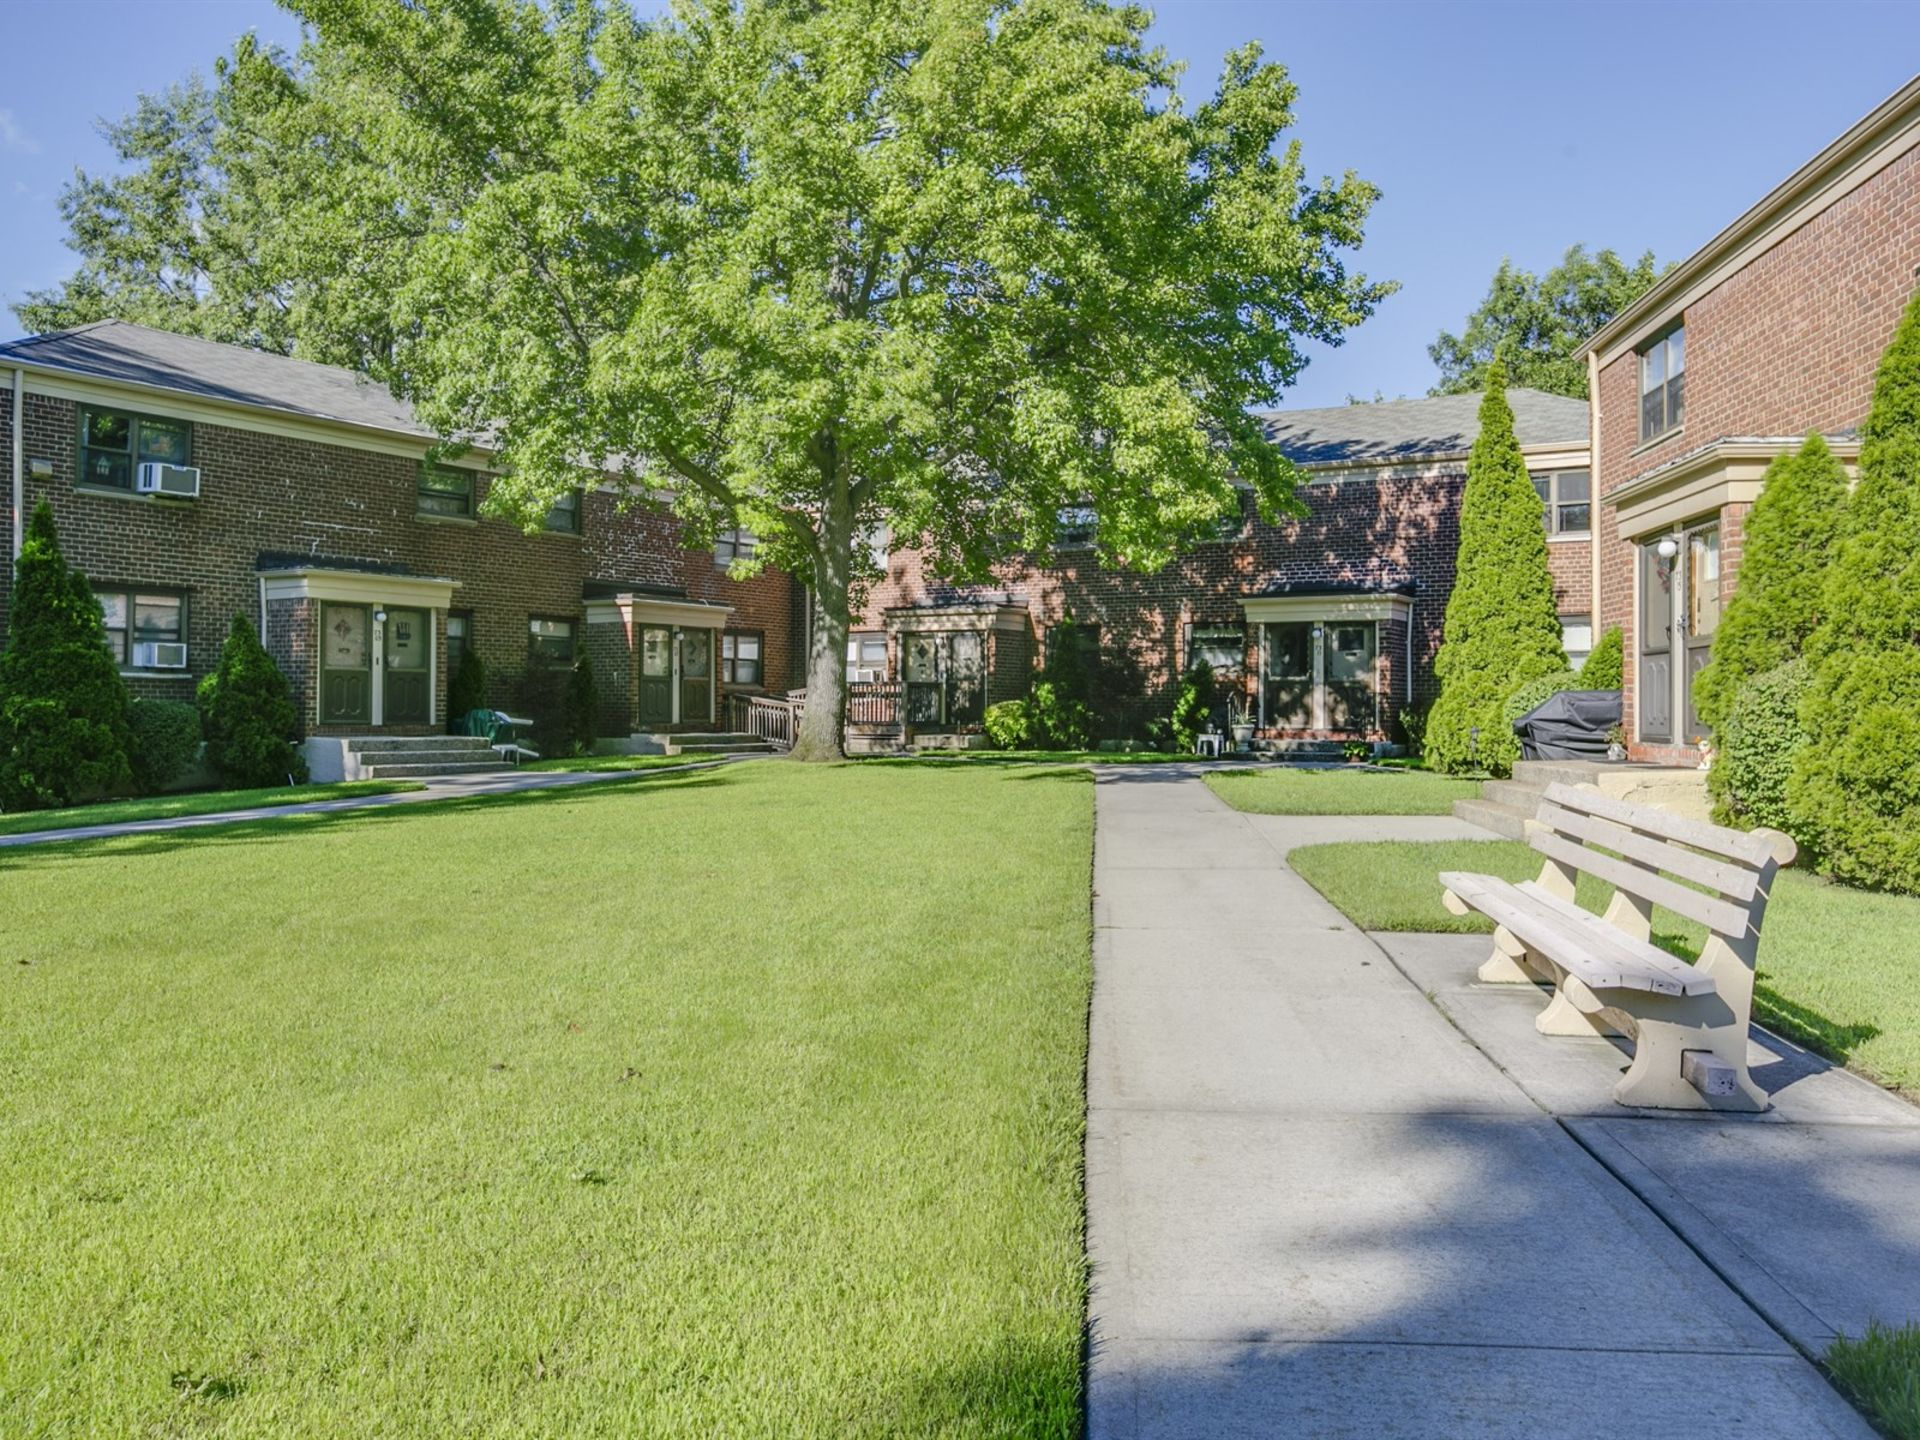 JUST LISTED: Charming Upper Unit In Windsor Oaks